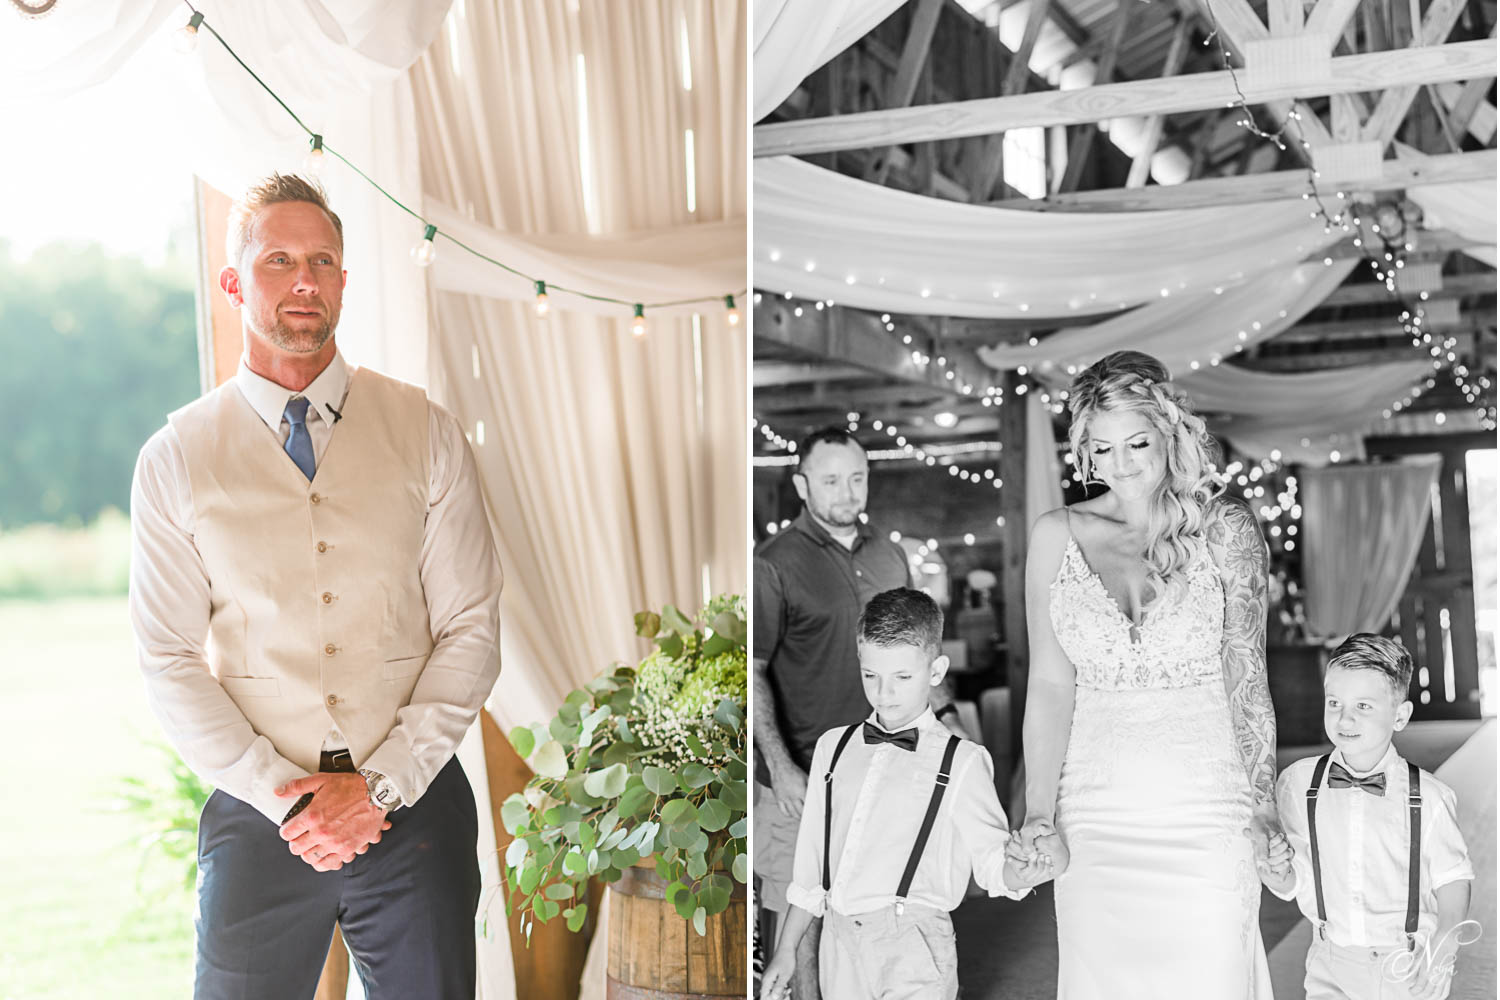 Groom seeing his brise walk down the aisle. And bride walking down the aisle with her sons